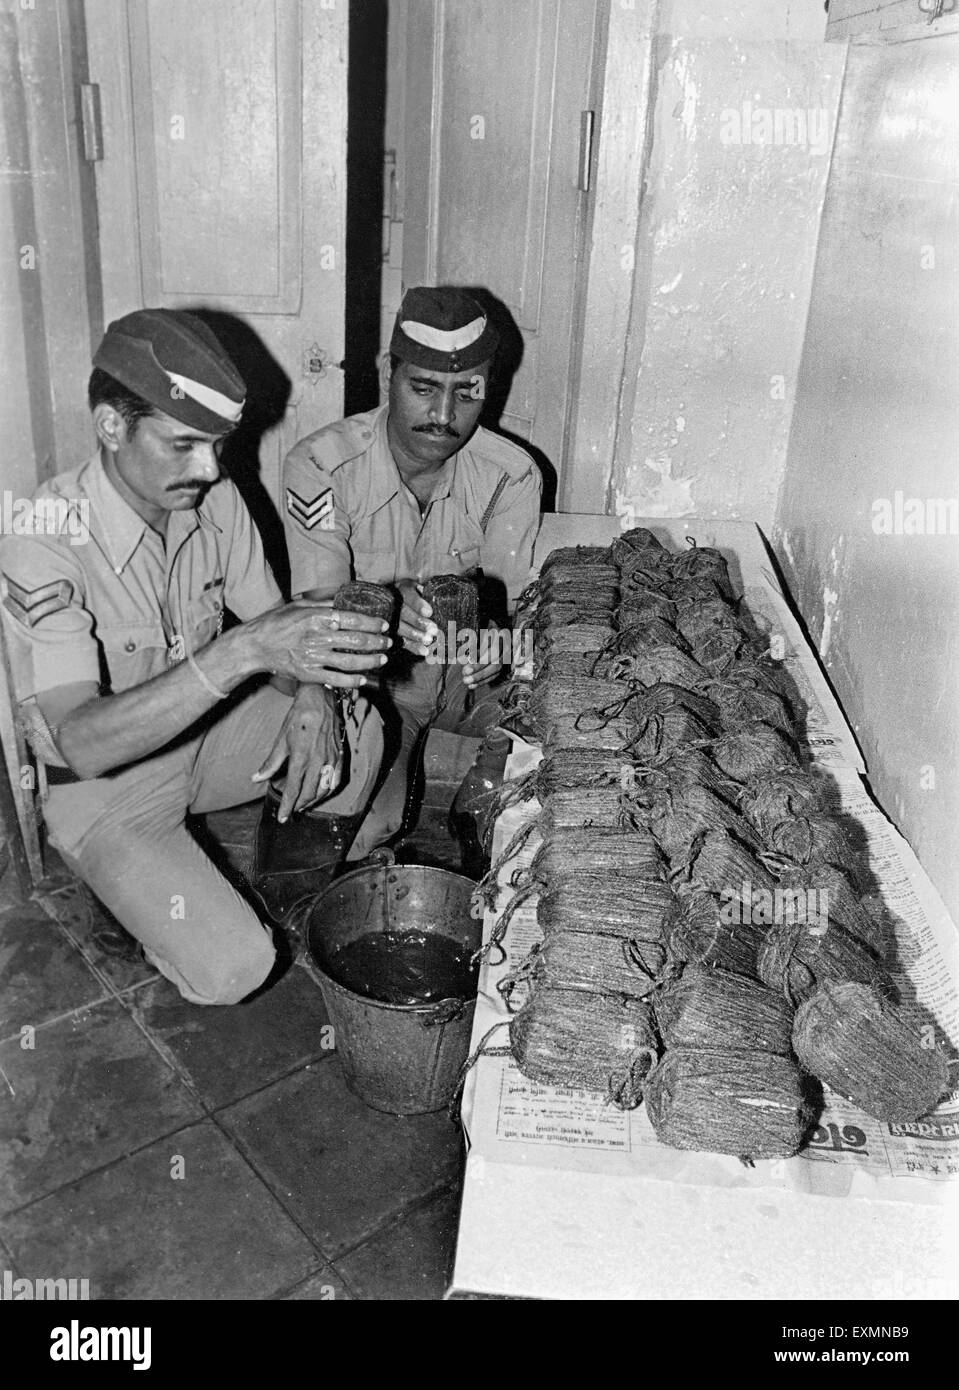 Policemen checking captured contraband goods Bombay Mumbai Maharashtra India - Stock Image